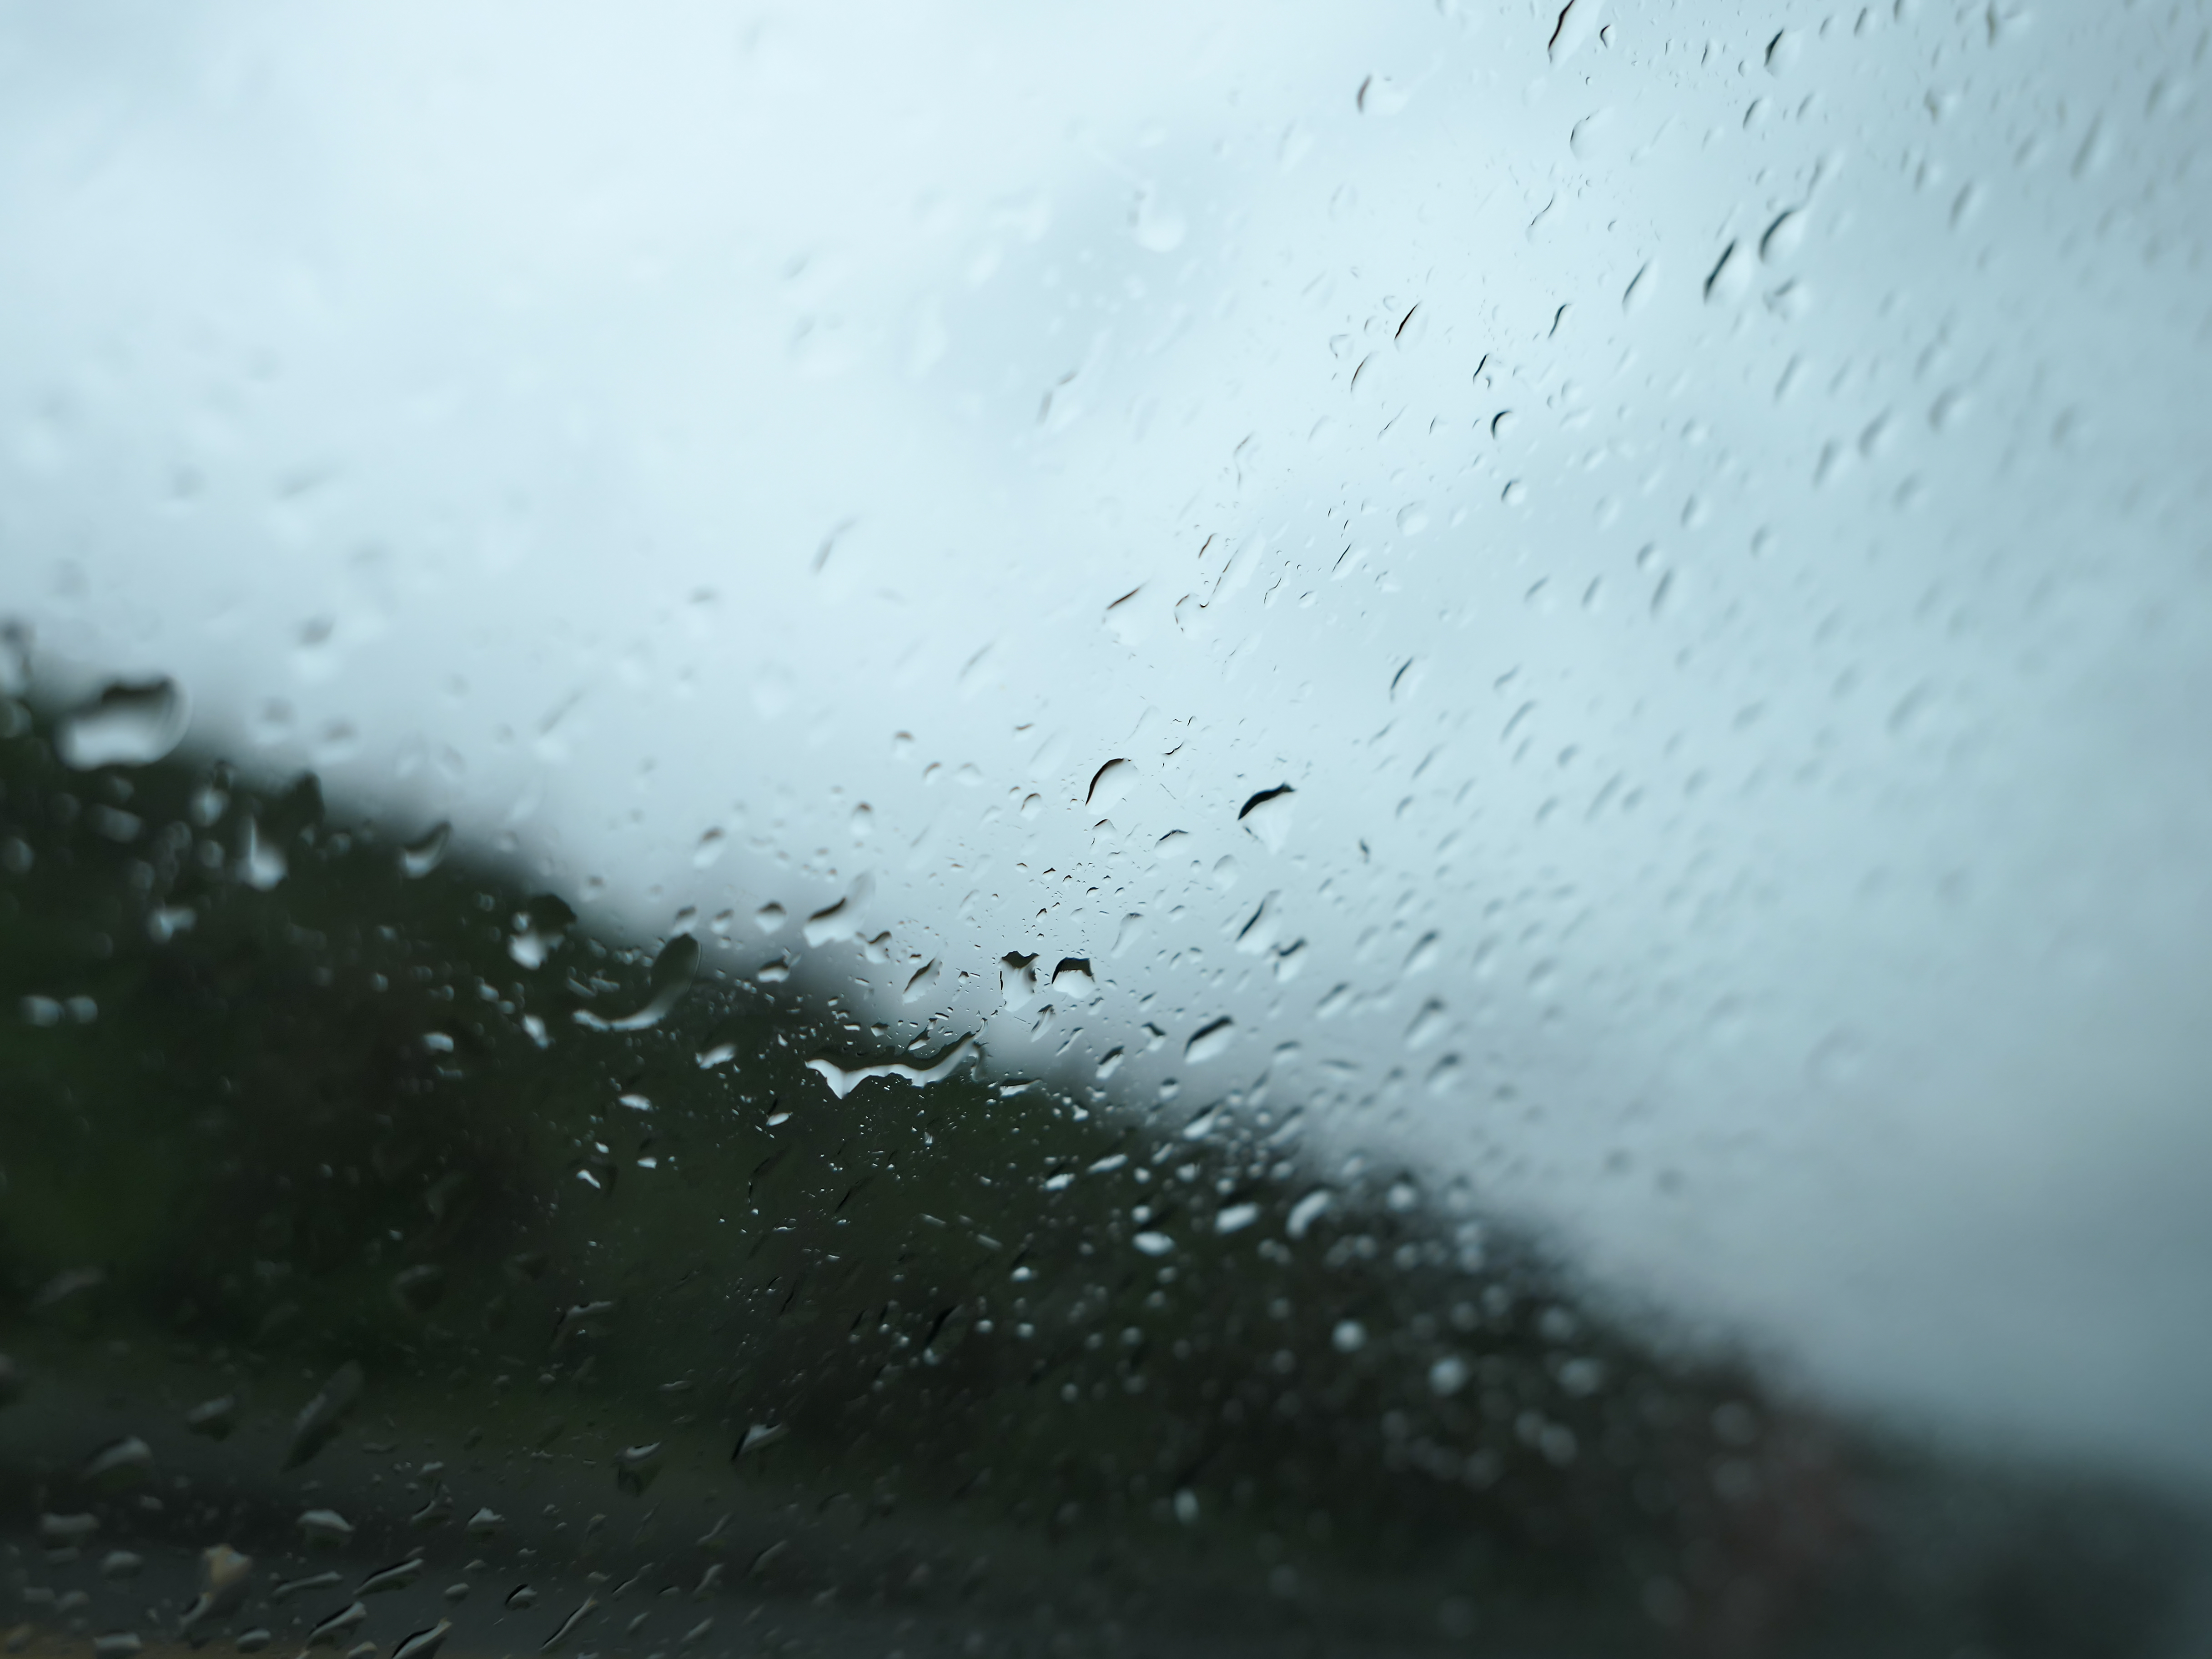 137619 download wallpaper Macro, Drops, Glass, Rain screensavers and pictures for free